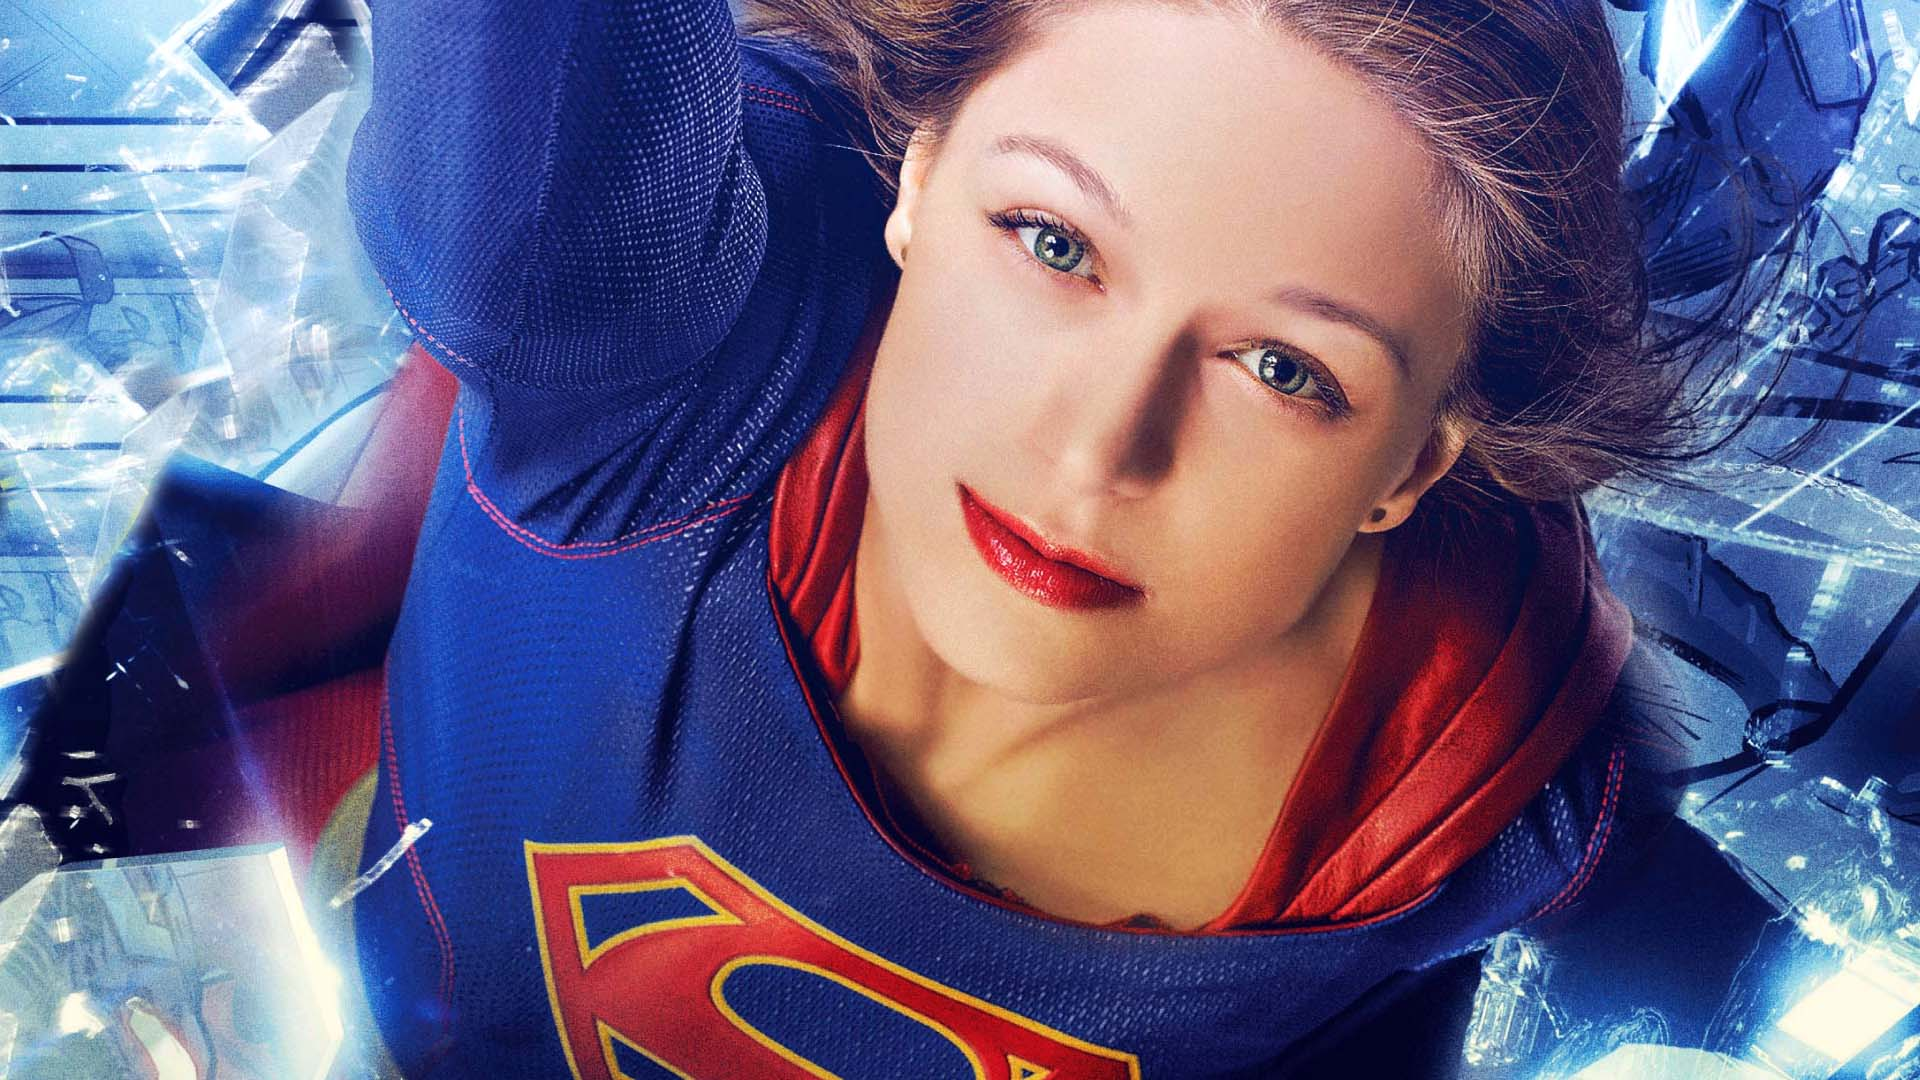 supergirl desktop wallpaper